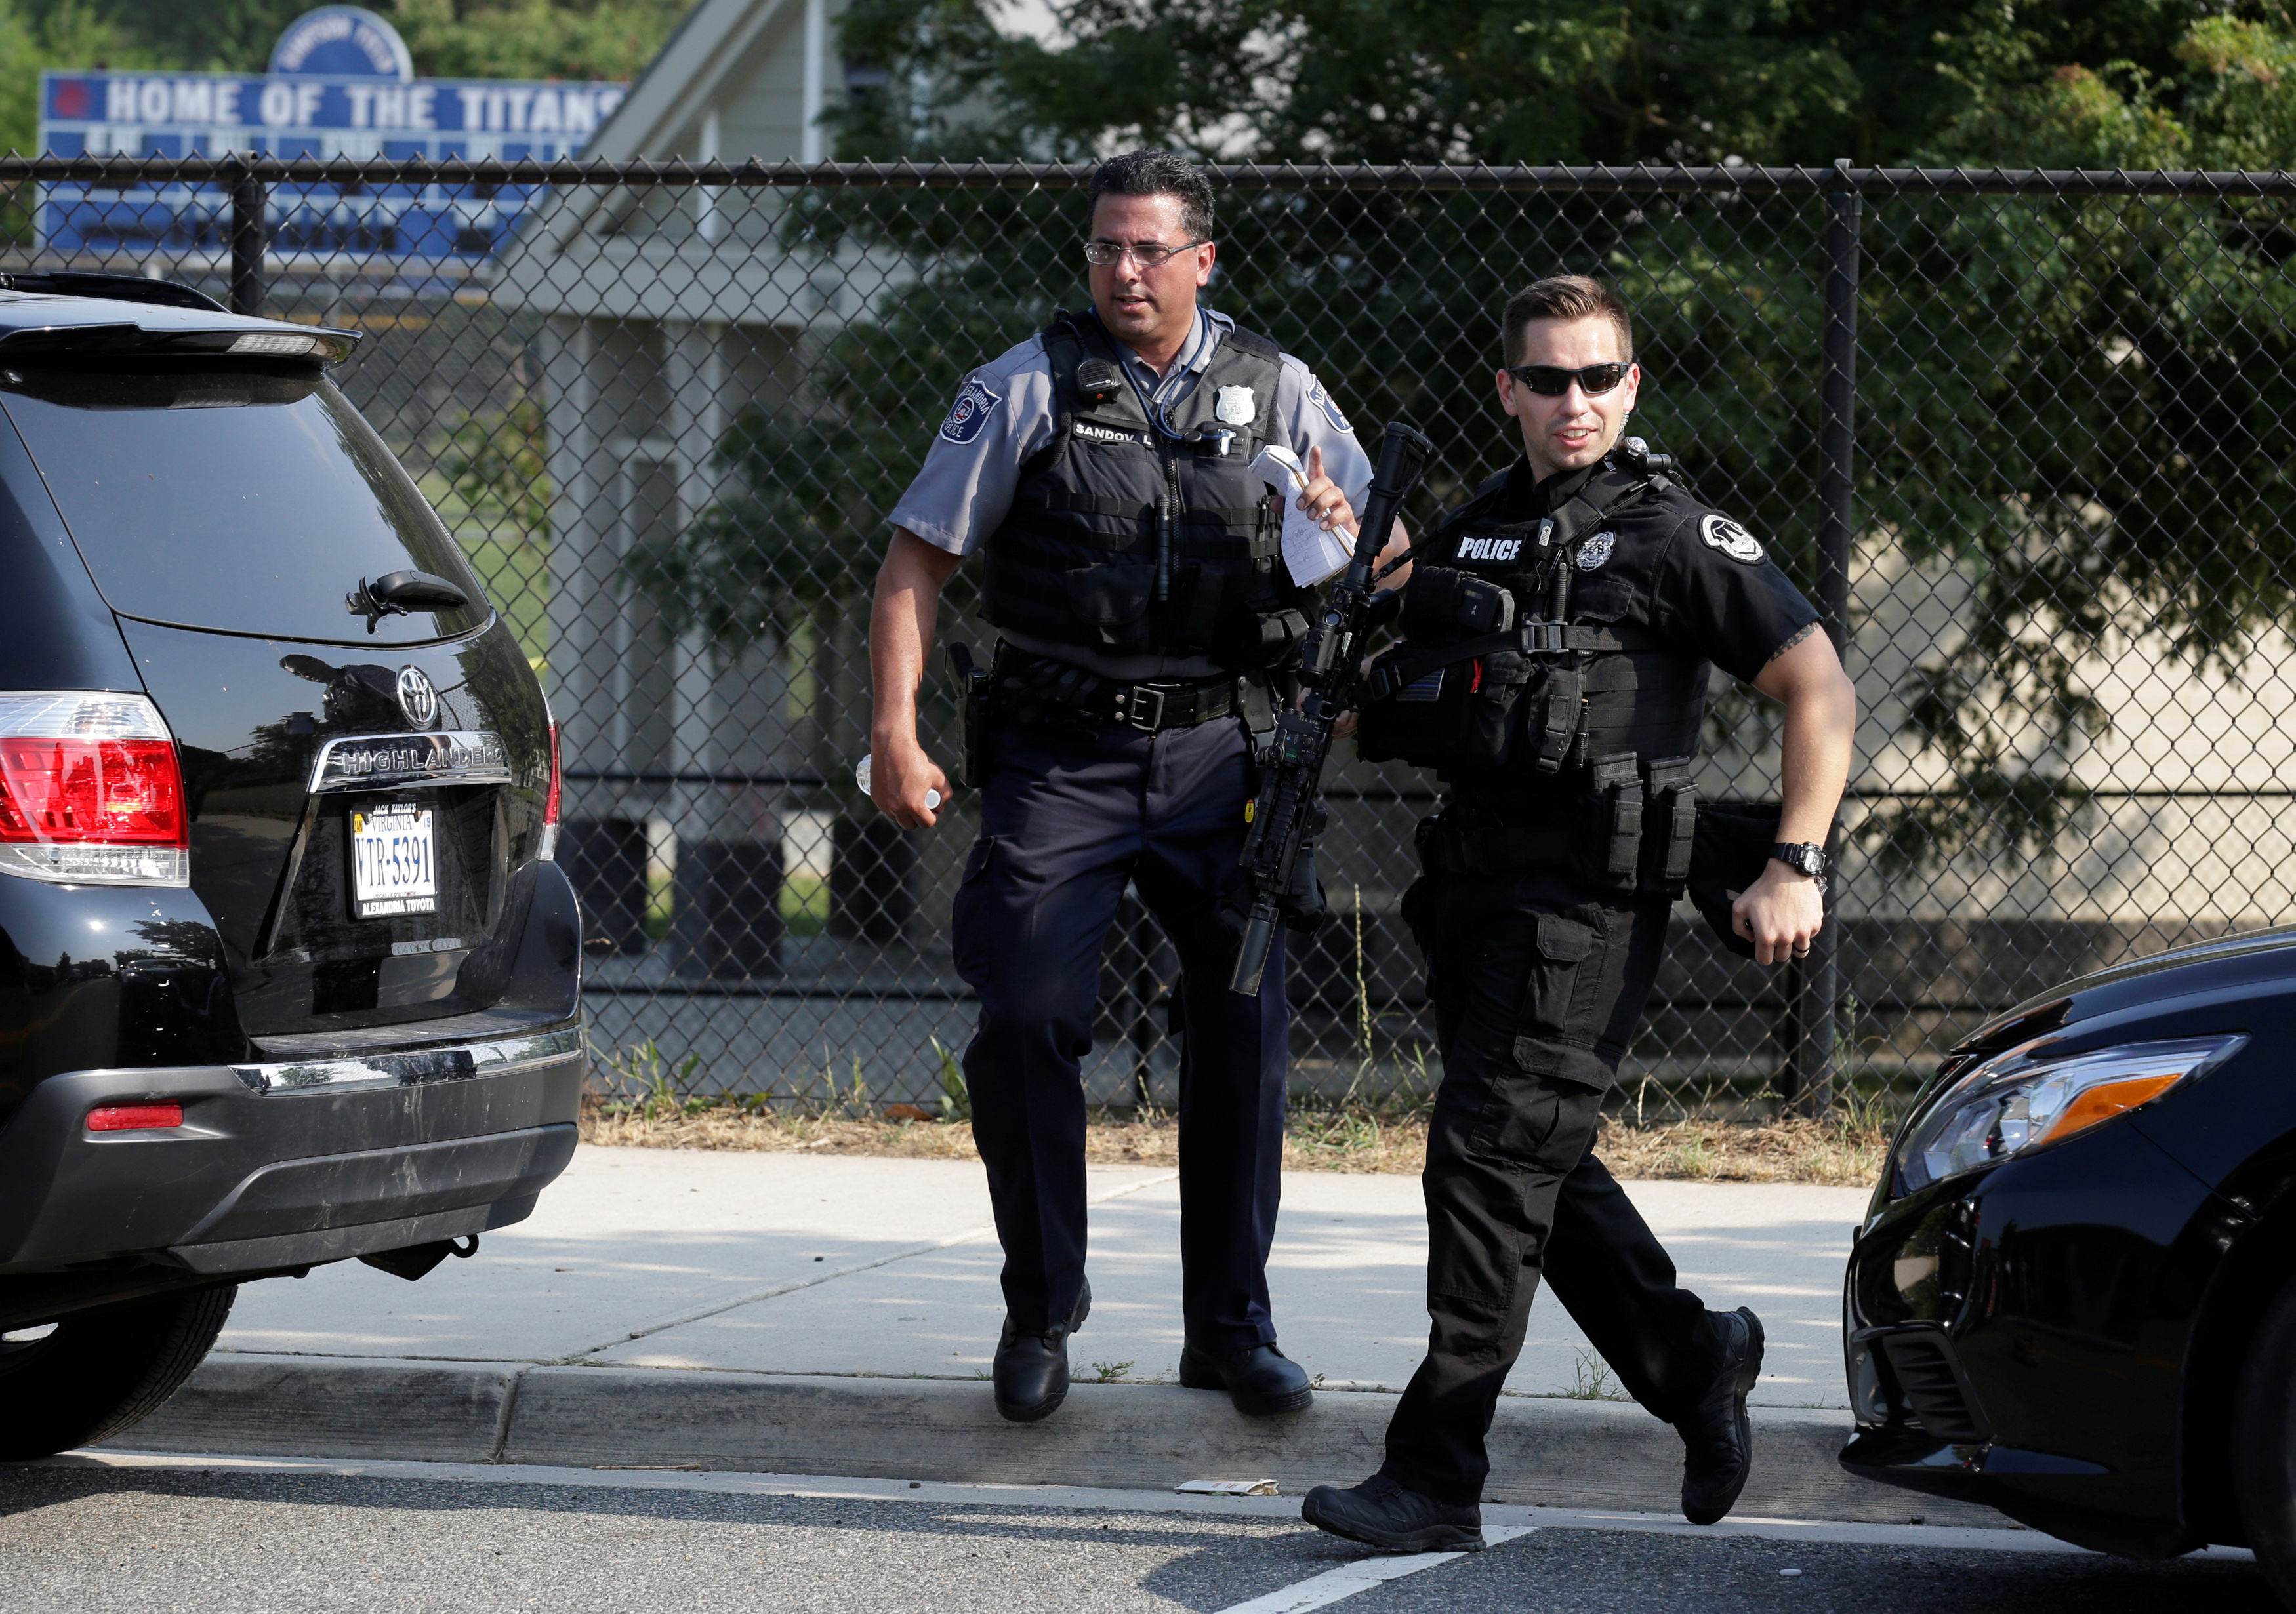 Police investigate a shooting scene after a gunman opened fire on Republican members of Congress during a baseball practice near Washington in Alexandria, Virginia. (REUTERS/Joshua Roberts)